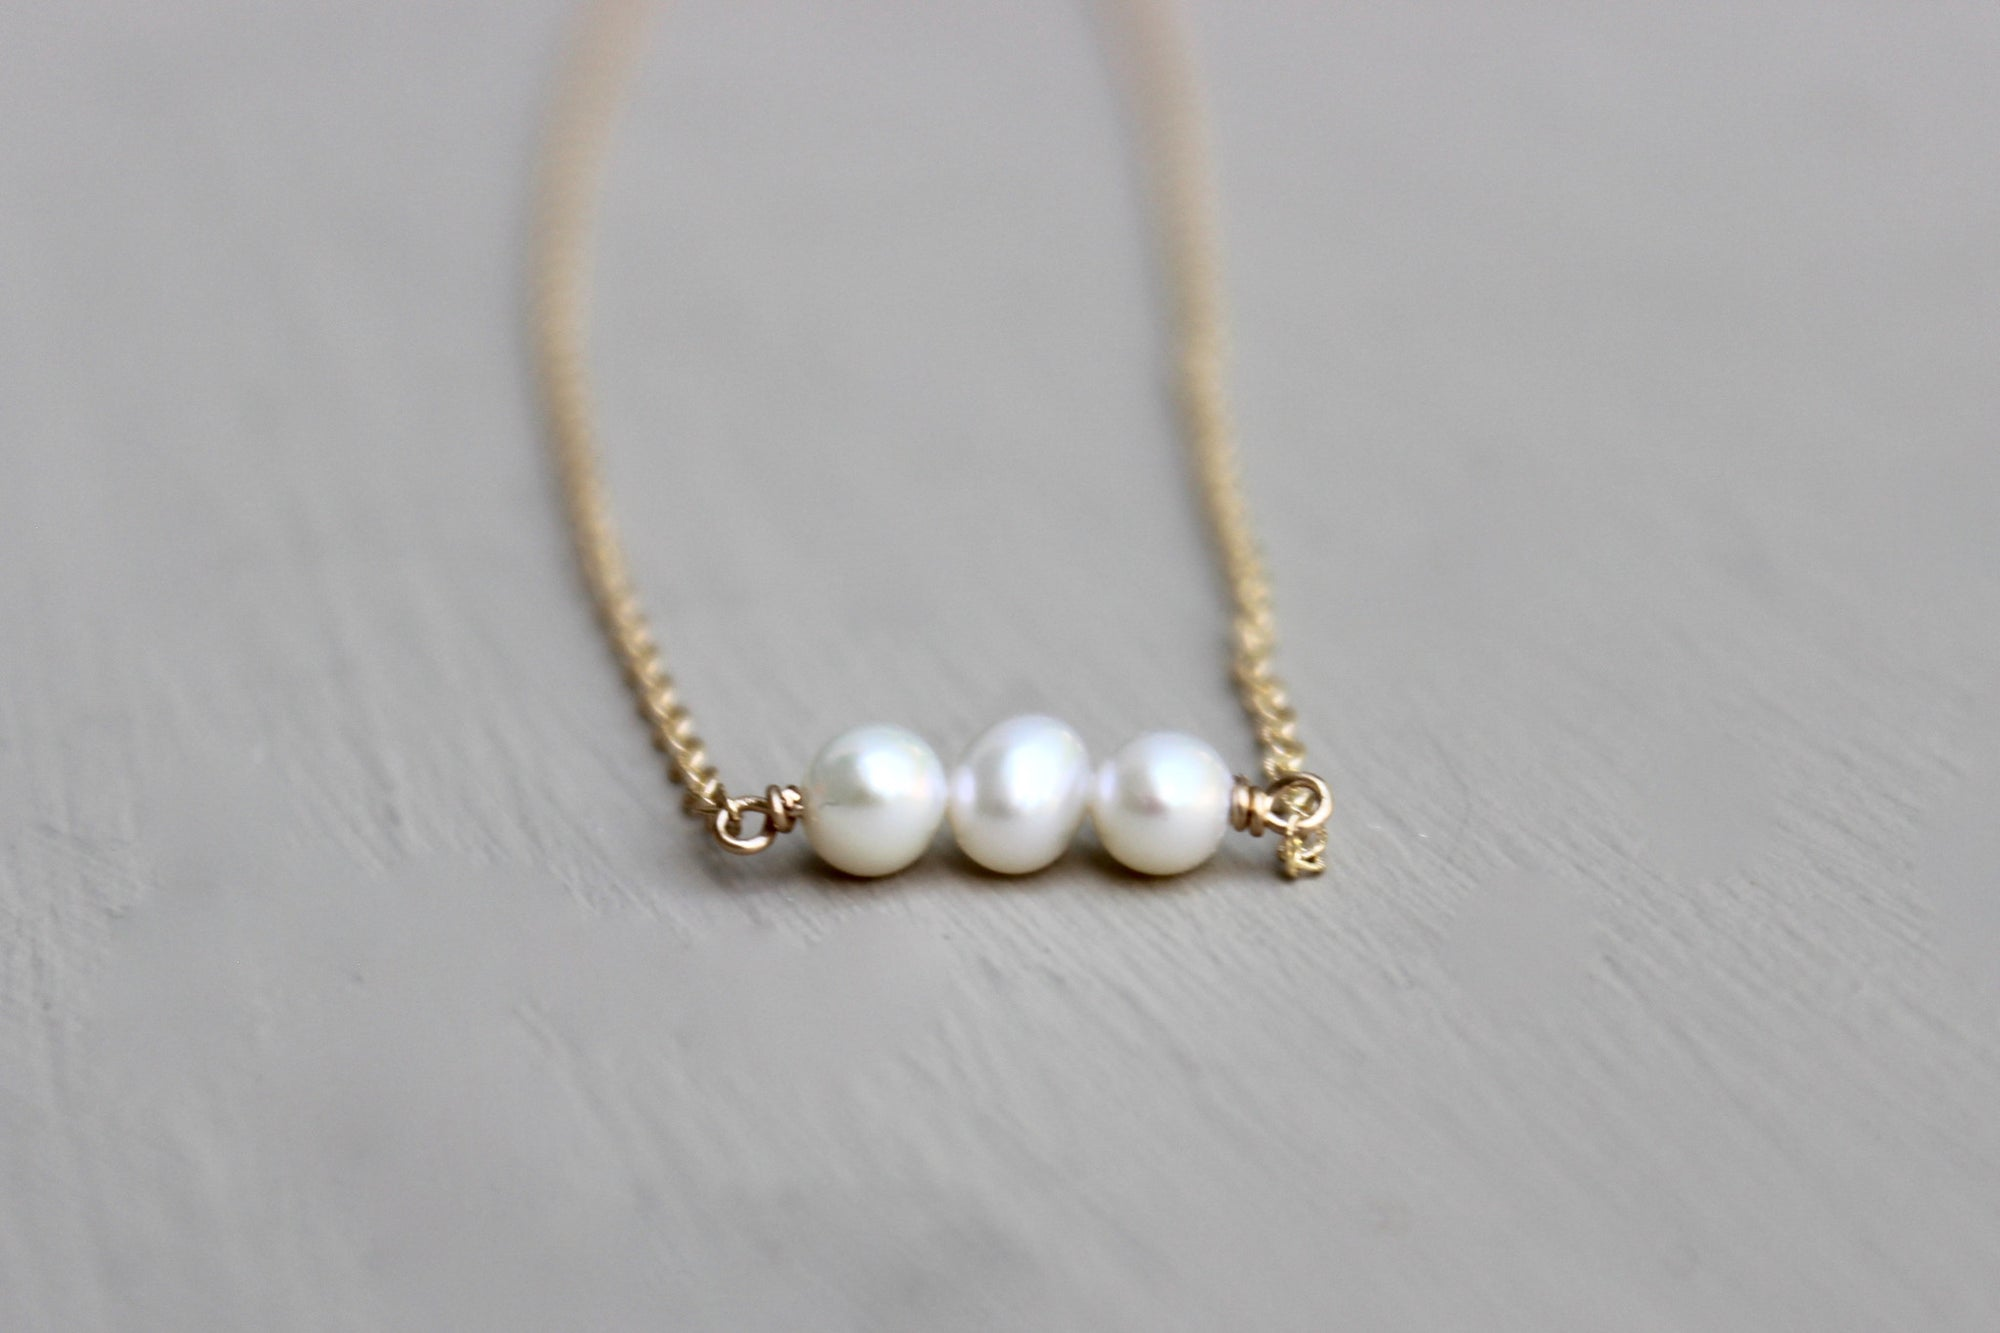 akoya of image necklace tara pearls jewellery gold pearl shop product k white mm